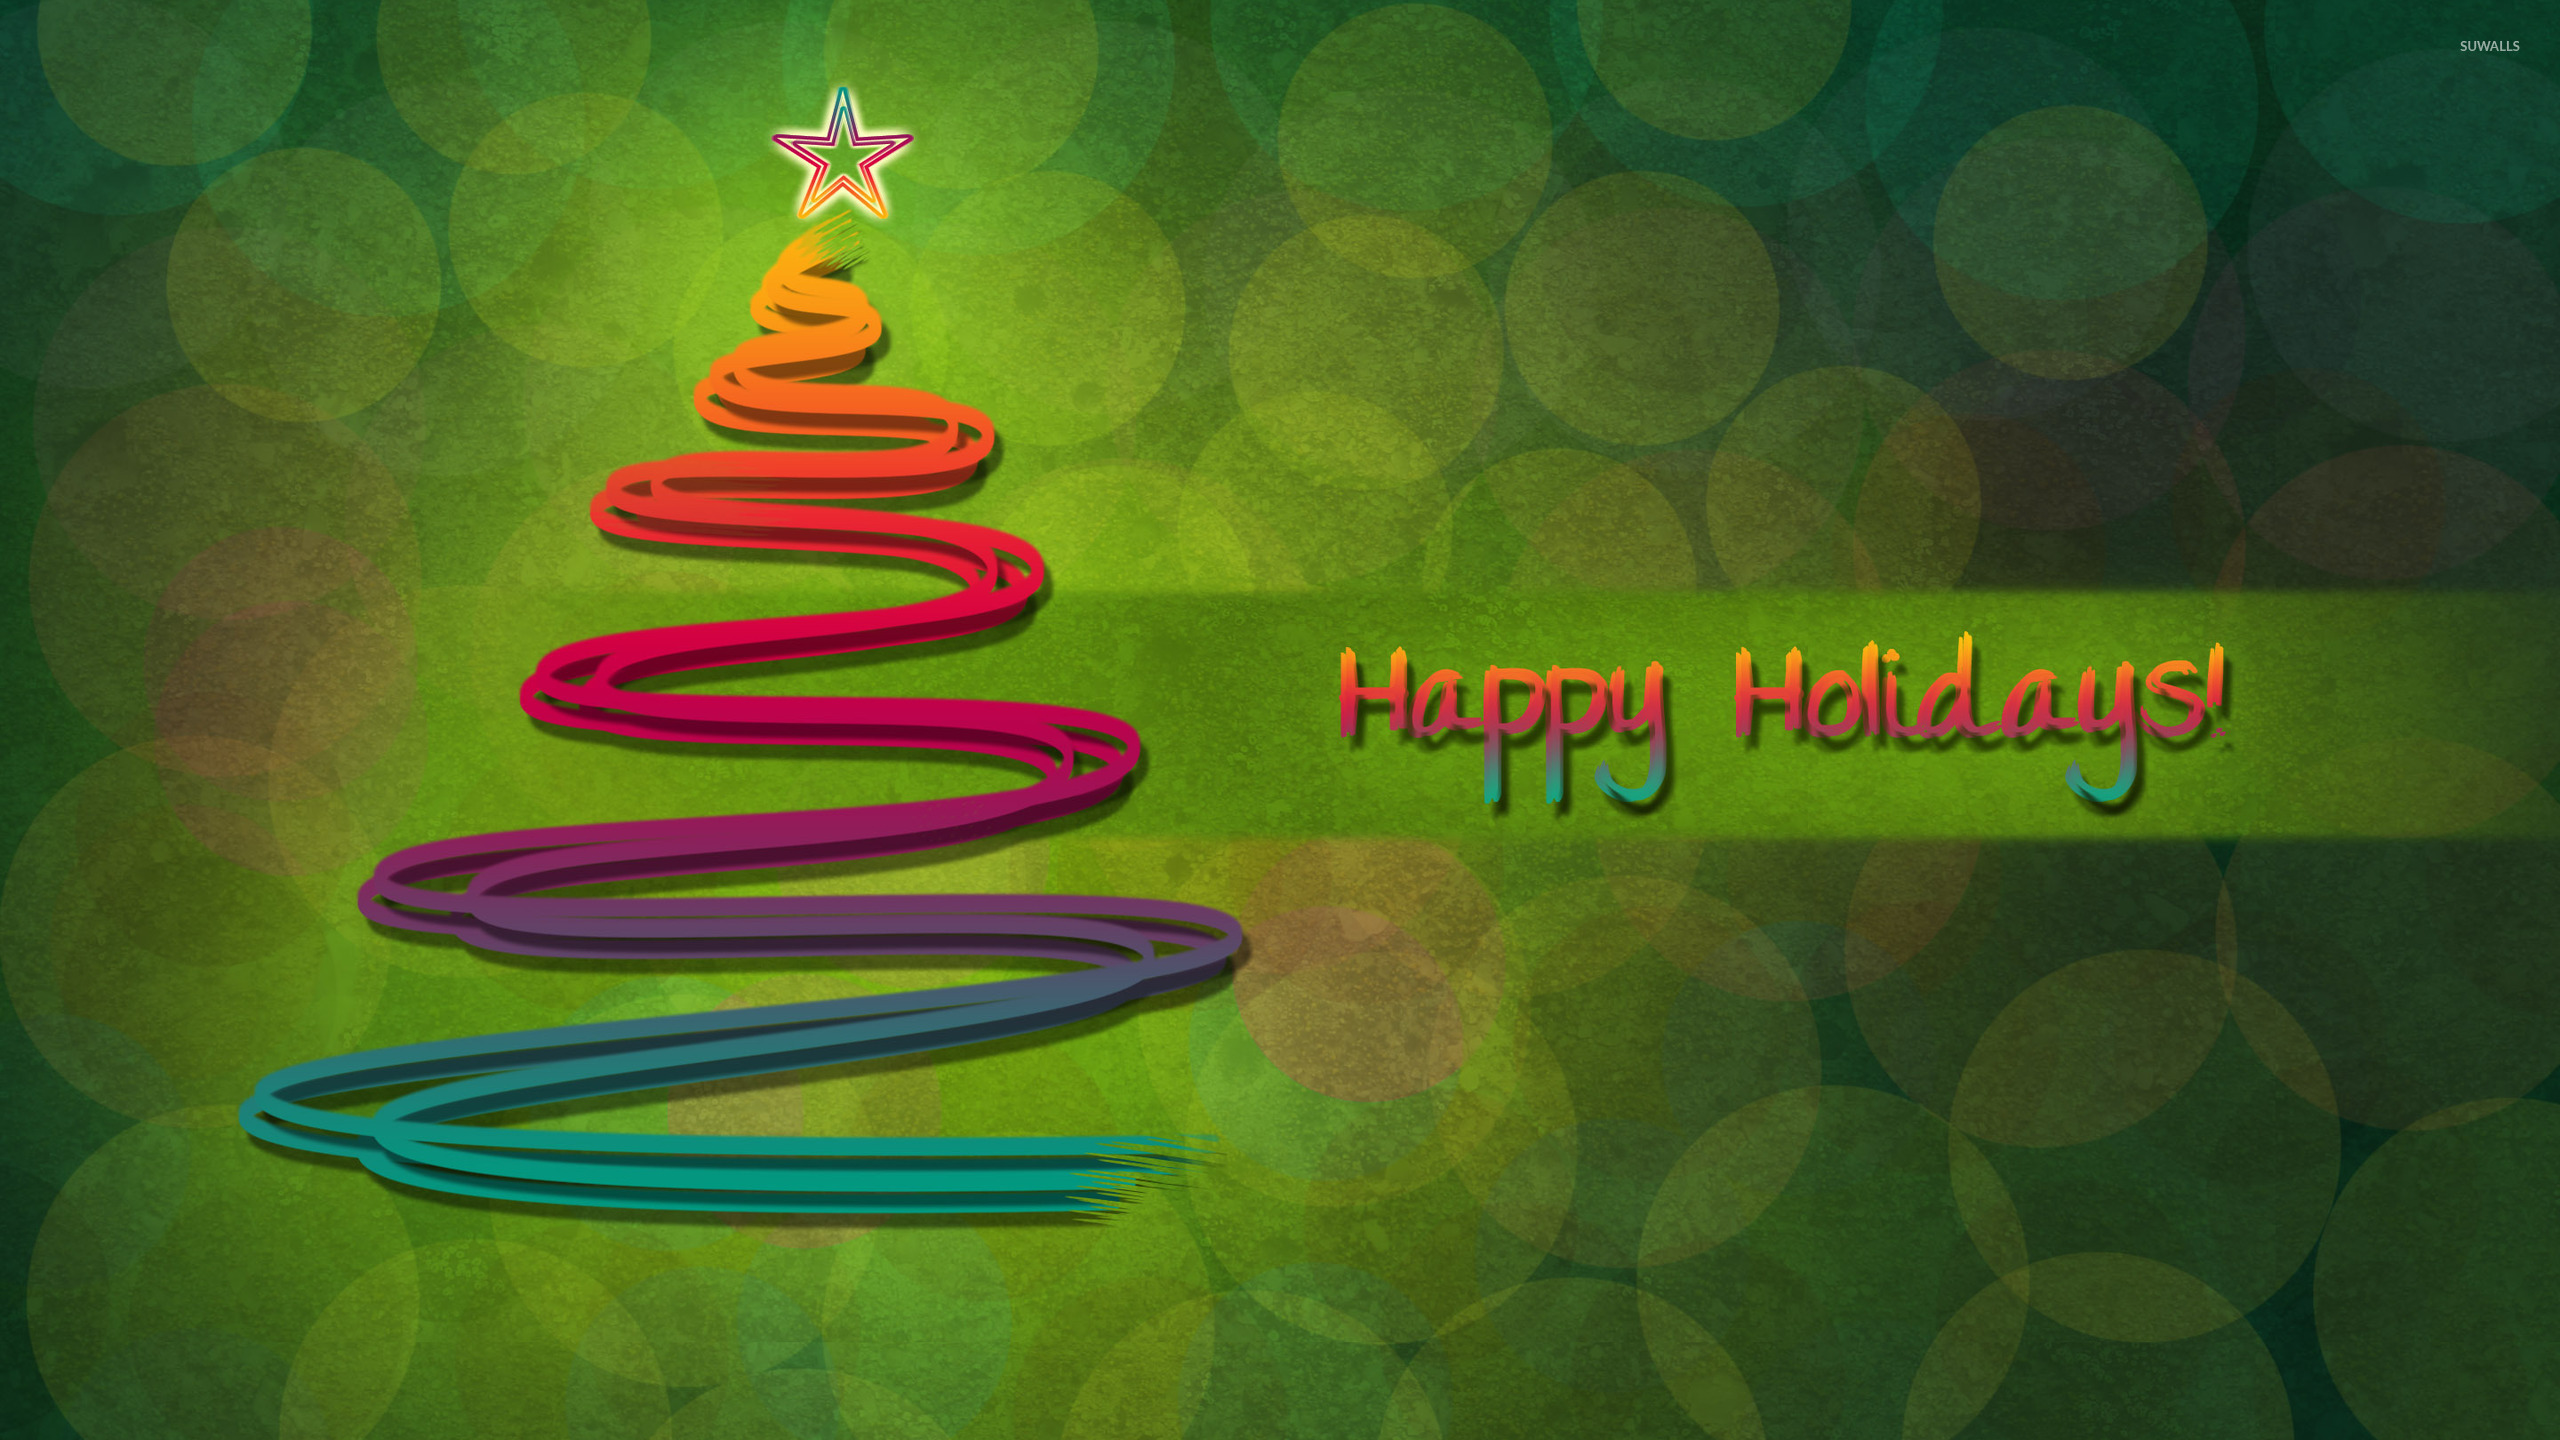 happy holidays 2 wallpaper holiday wallpapers 16655